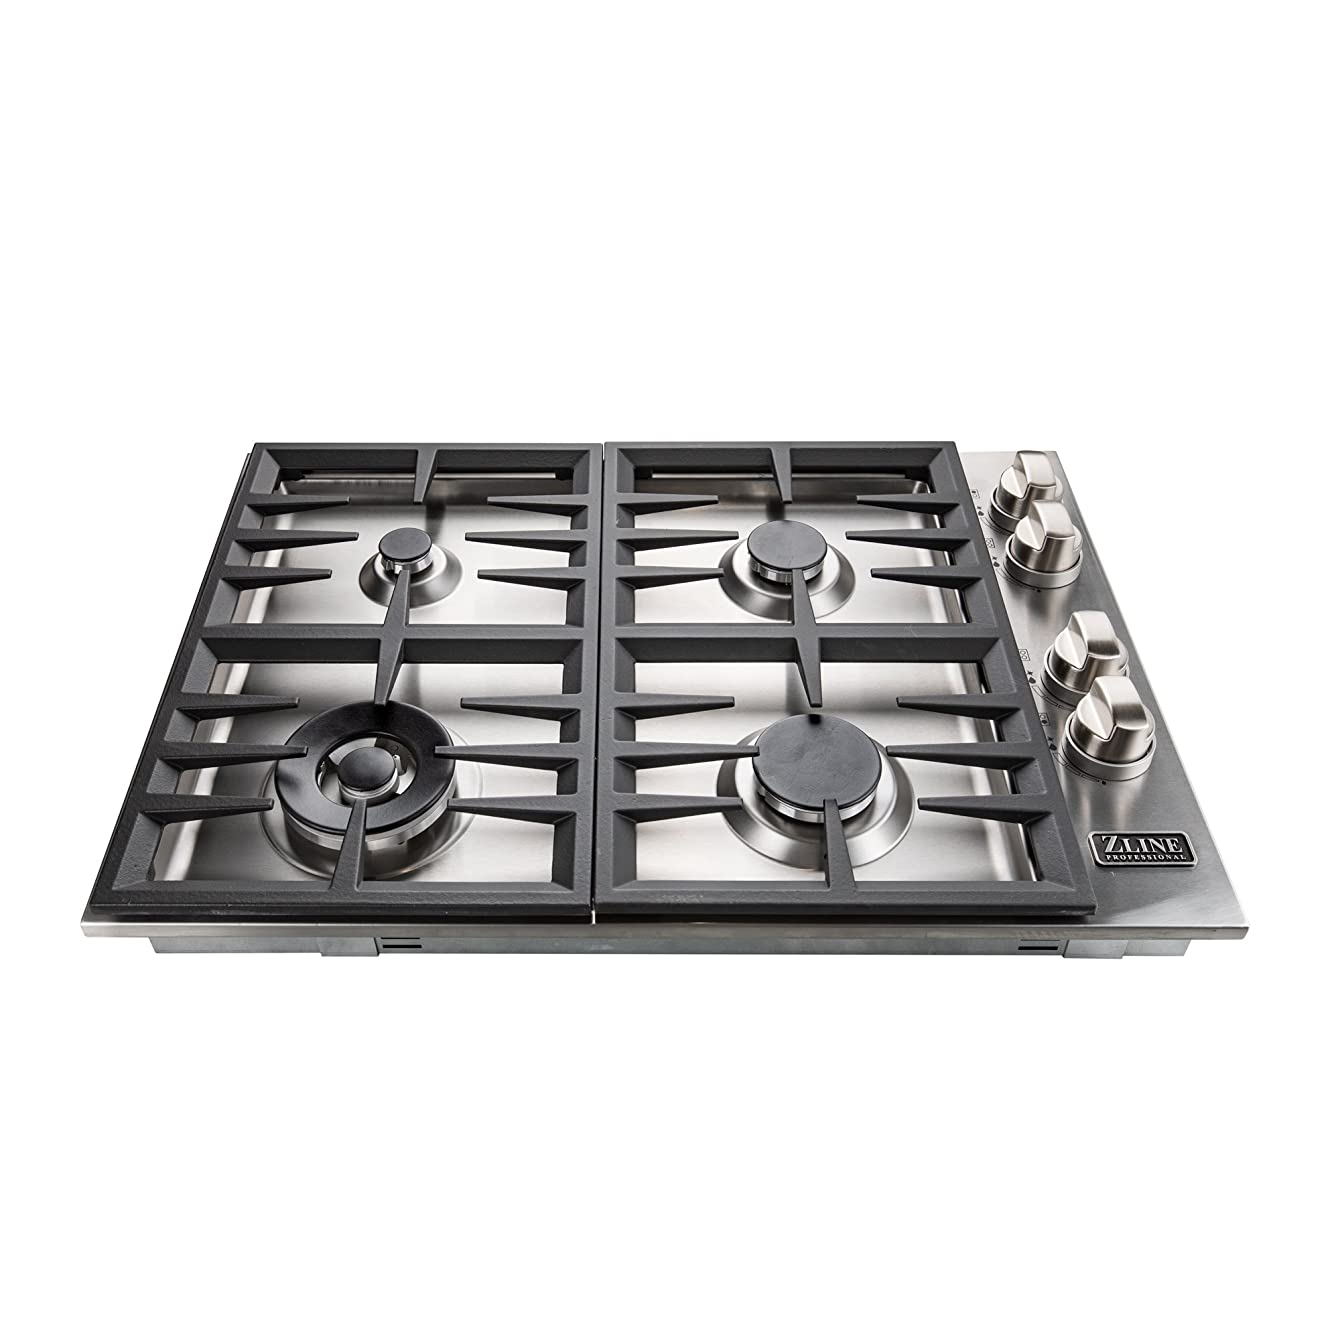 ZLINE 30 in. Dropin Cooktop with 4 Gas Burners (RC30)